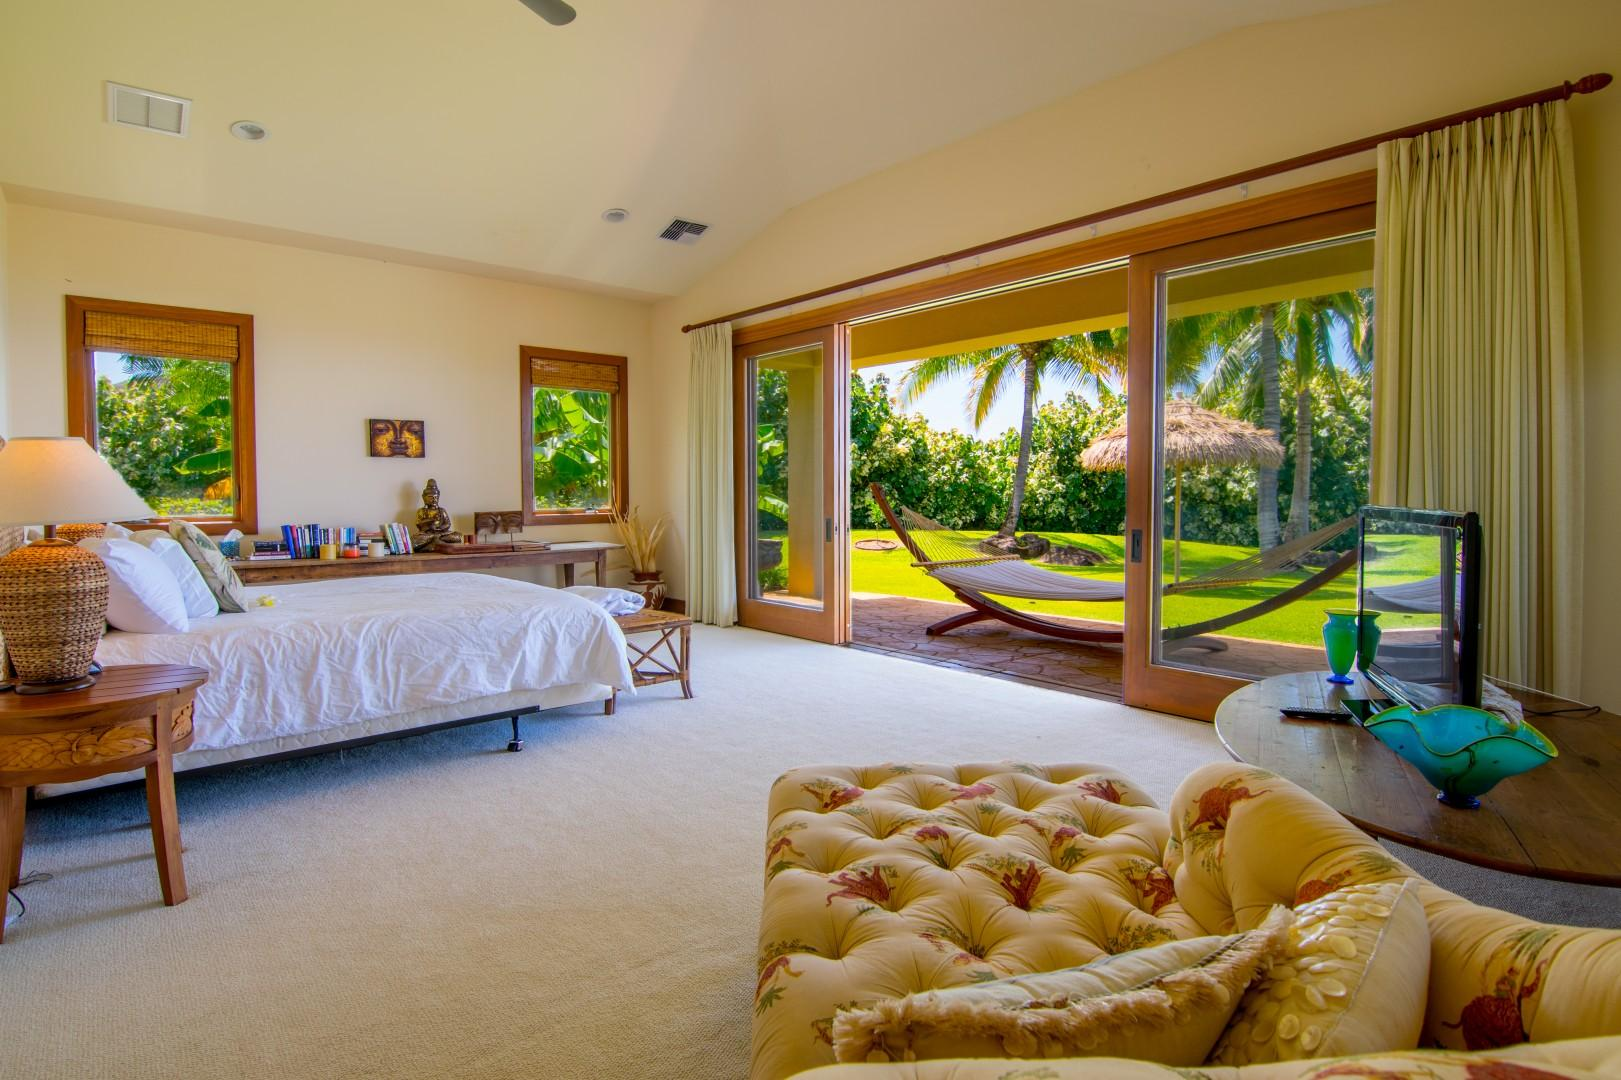 Master Bedroom with Lounge Chair and View